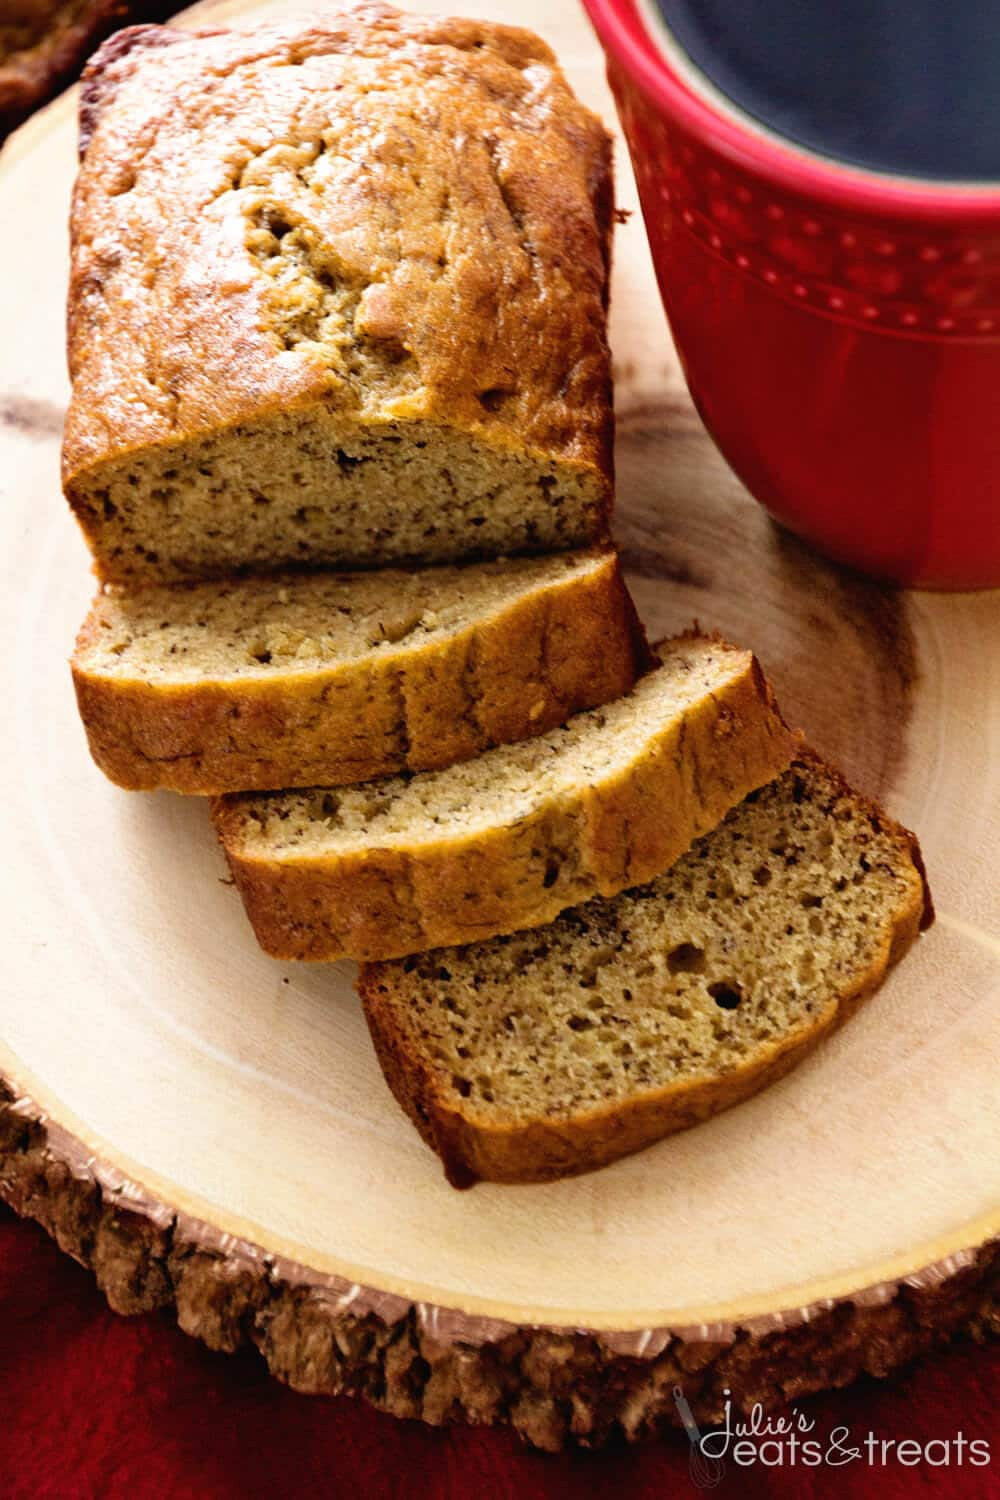 Healthy Bread Recipes  Healthy Banana Bread Recipe Julie s Eats & Treats